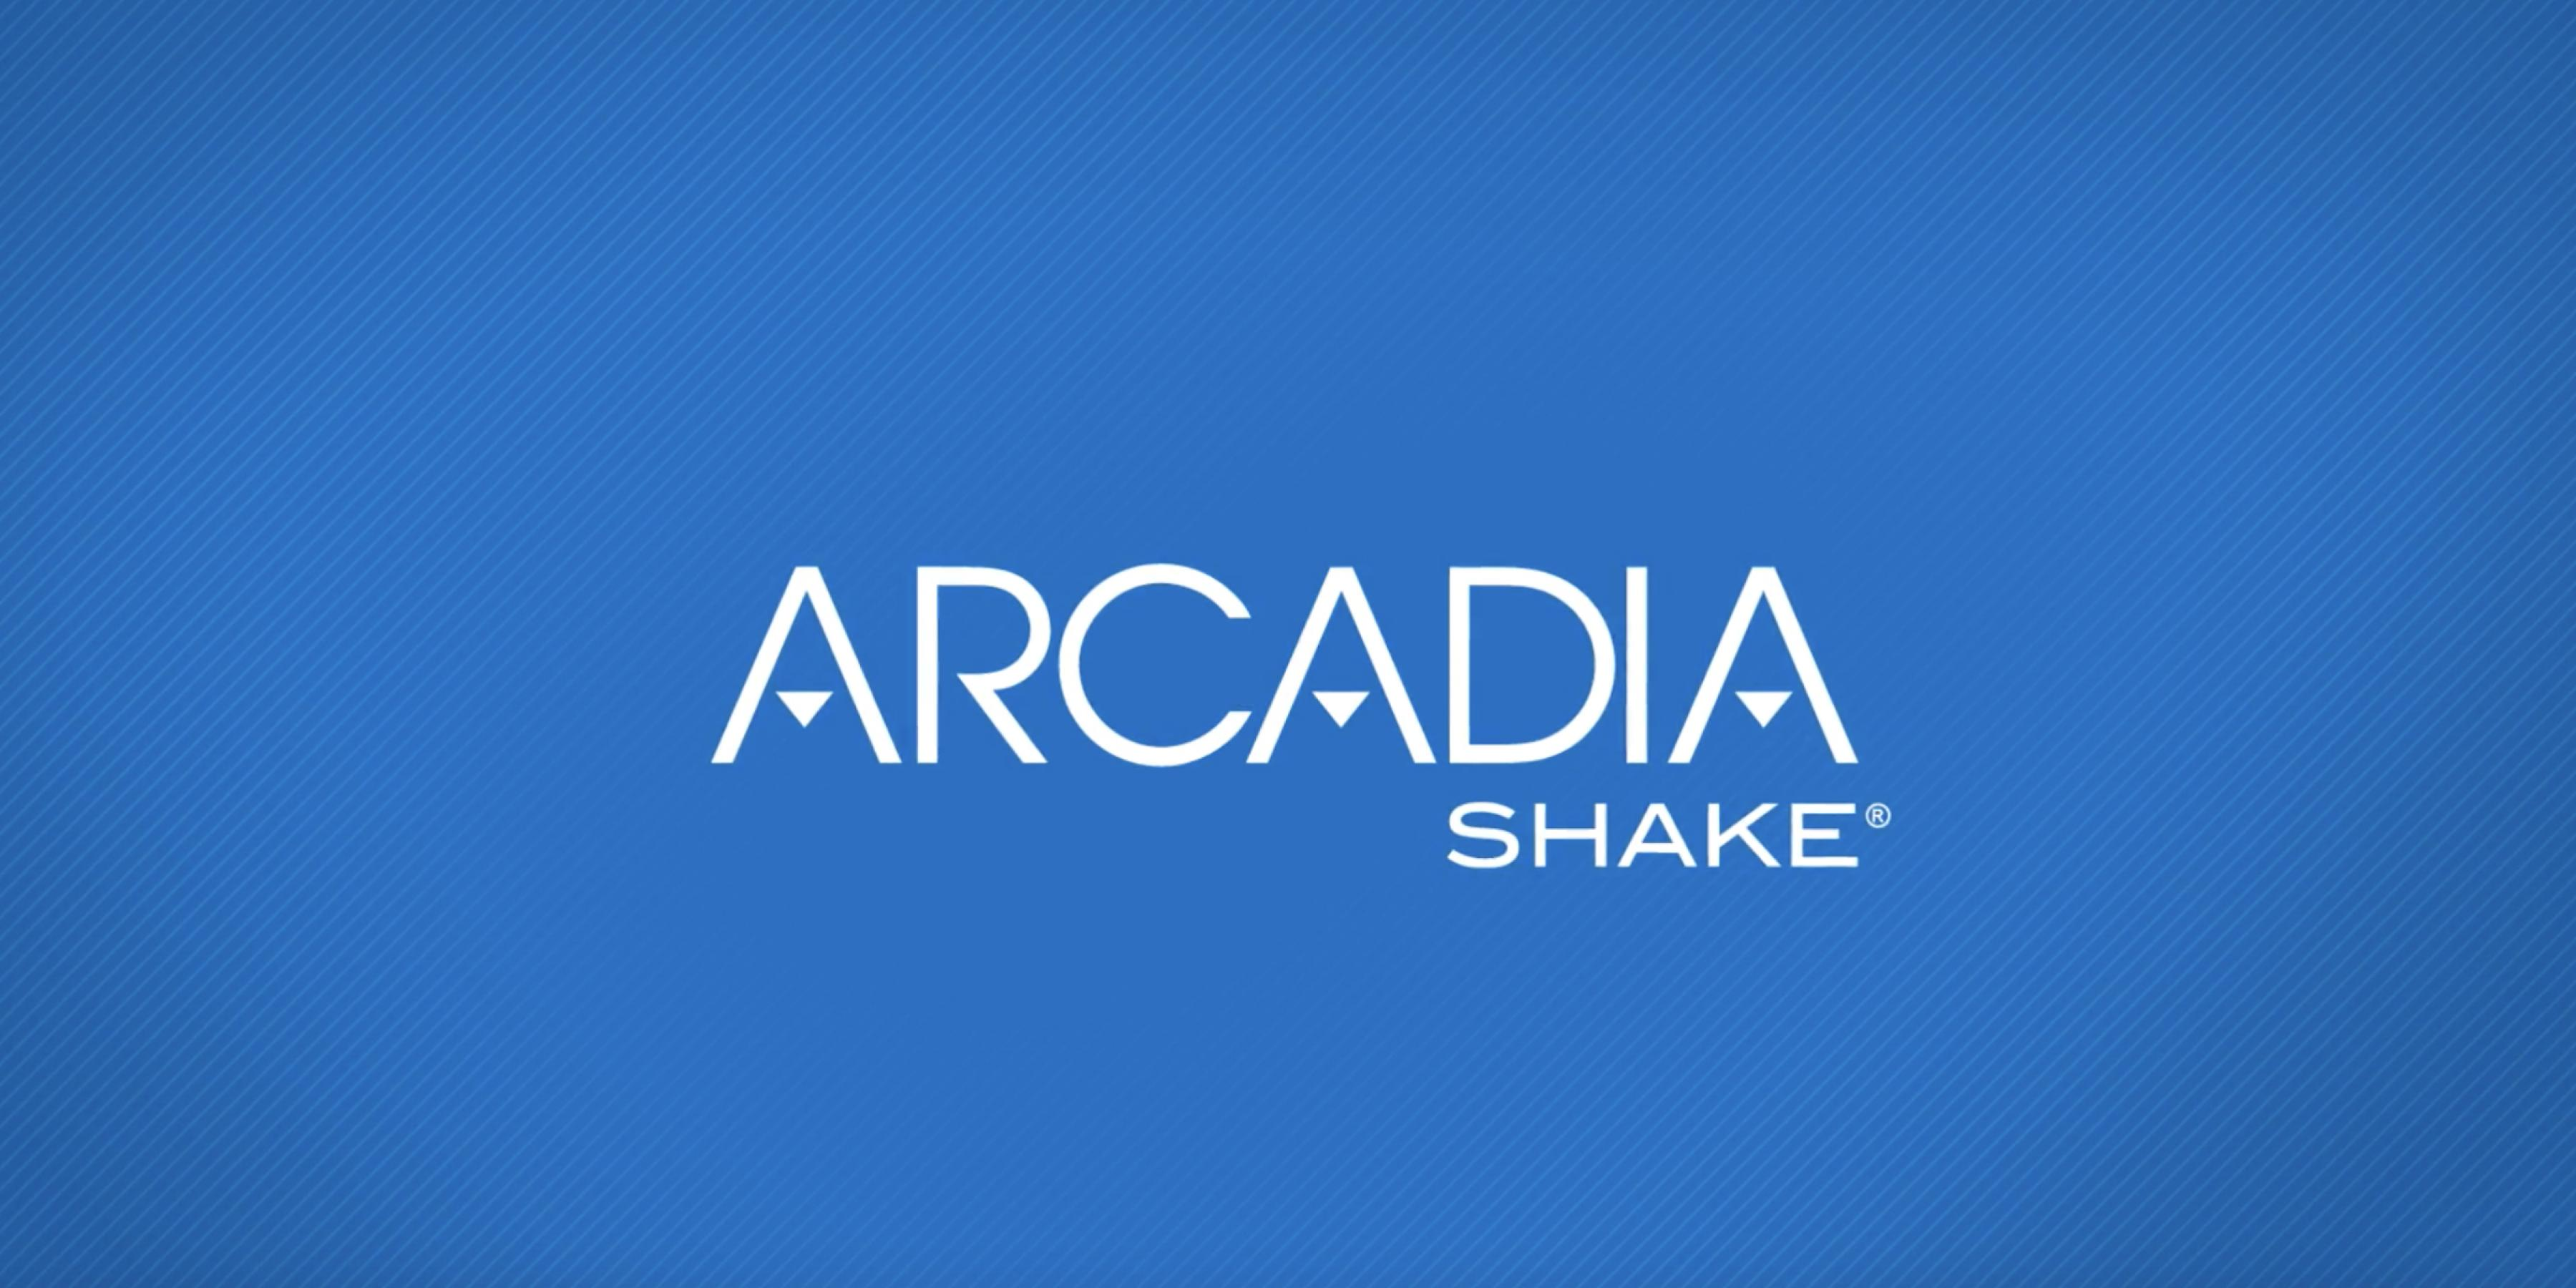 Arcadia Shake® luxury shingles the perfect replacement for aging country club roof